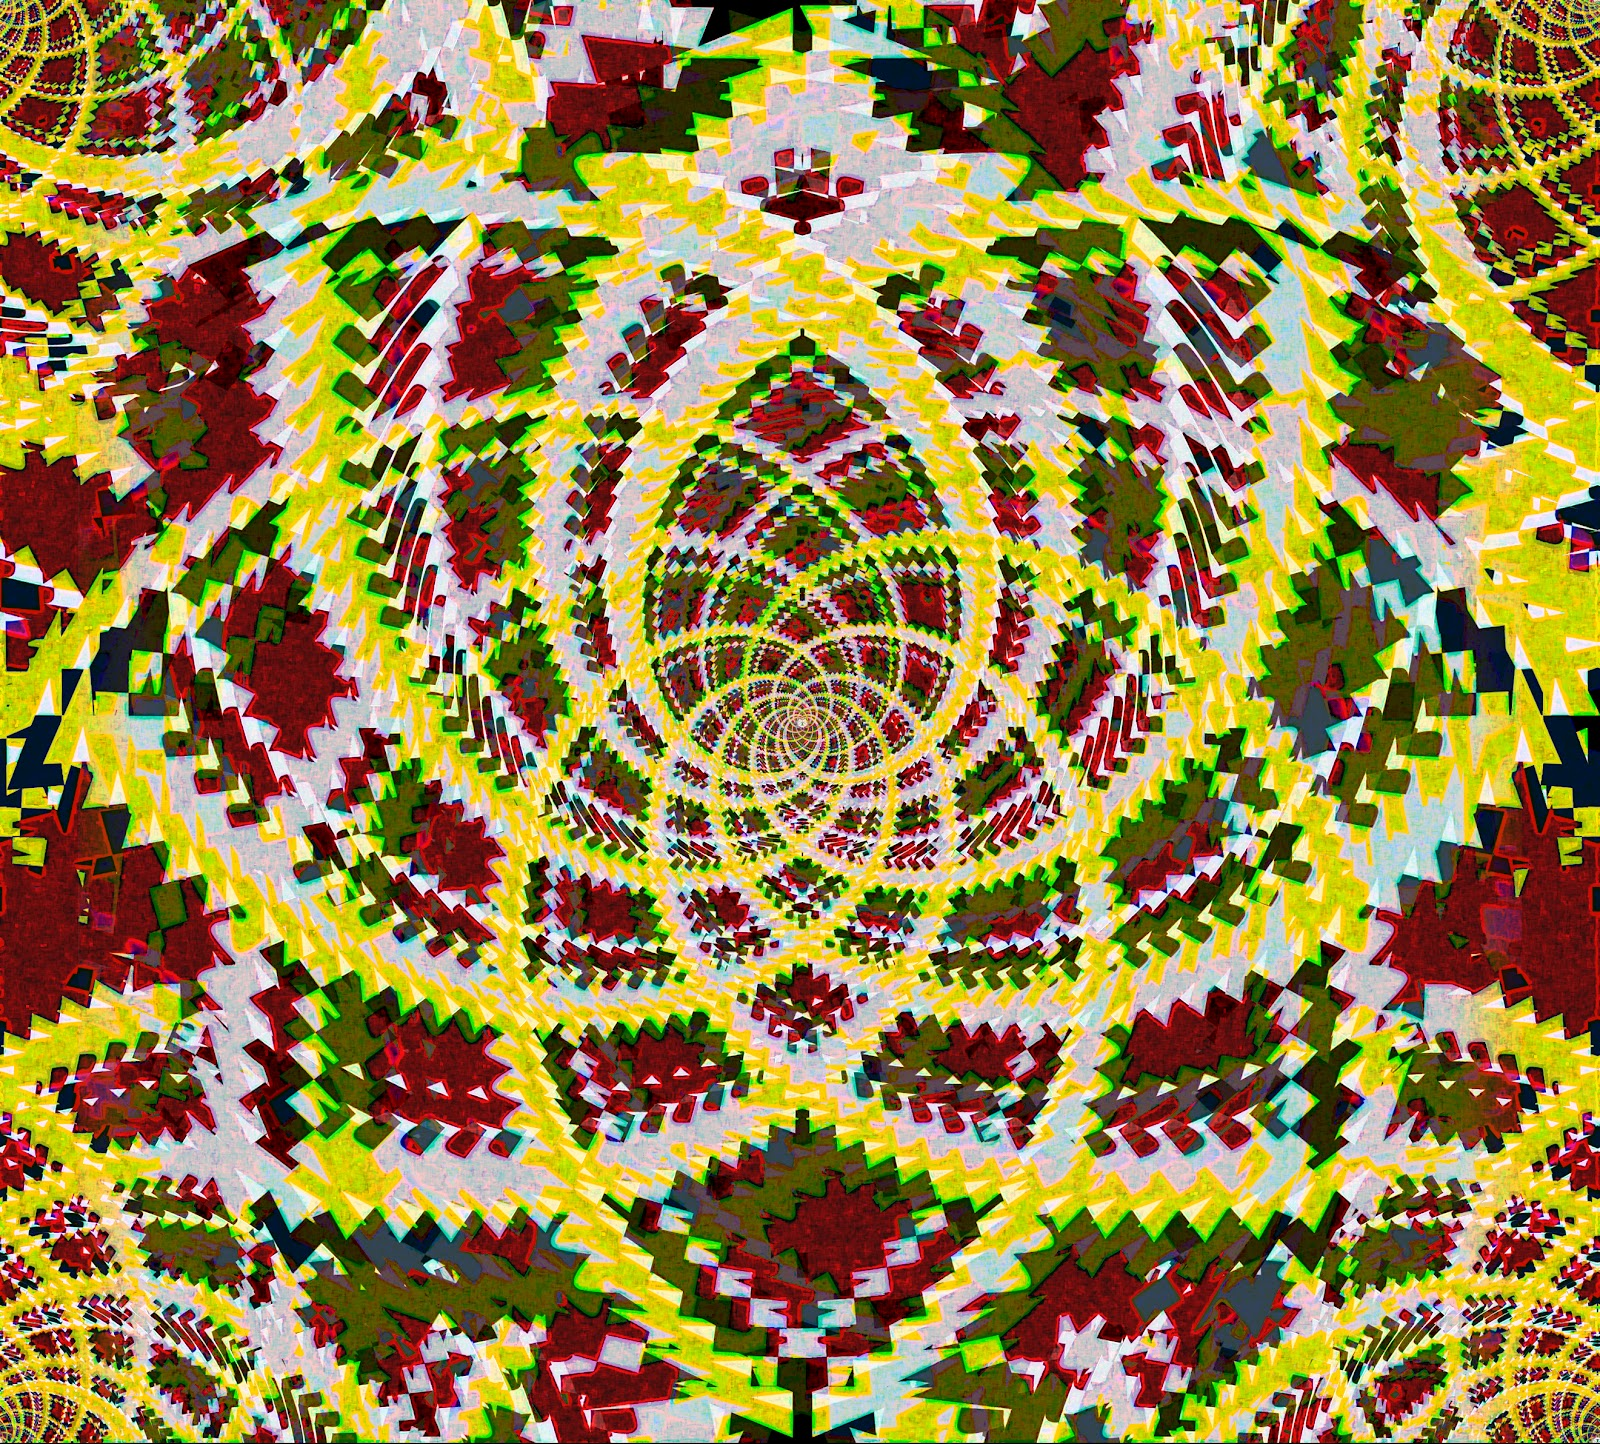 mandalas fractales patterns efectos visuales efectos opticos